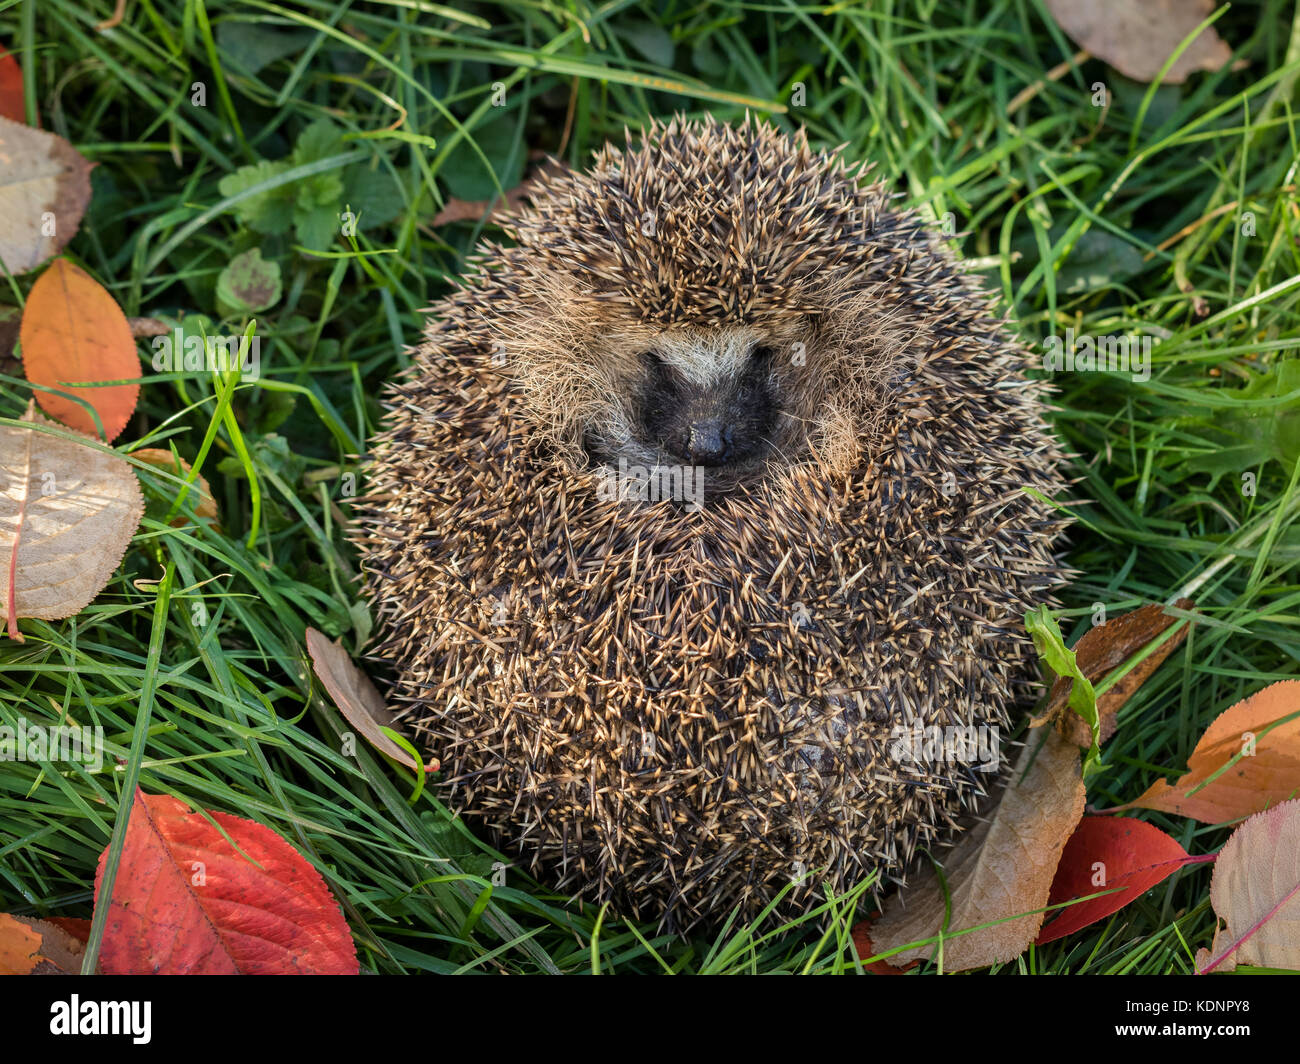 Wild Eurpean Hedgehog, Erinaceus europaeus, curled up in green grass - Stock Image